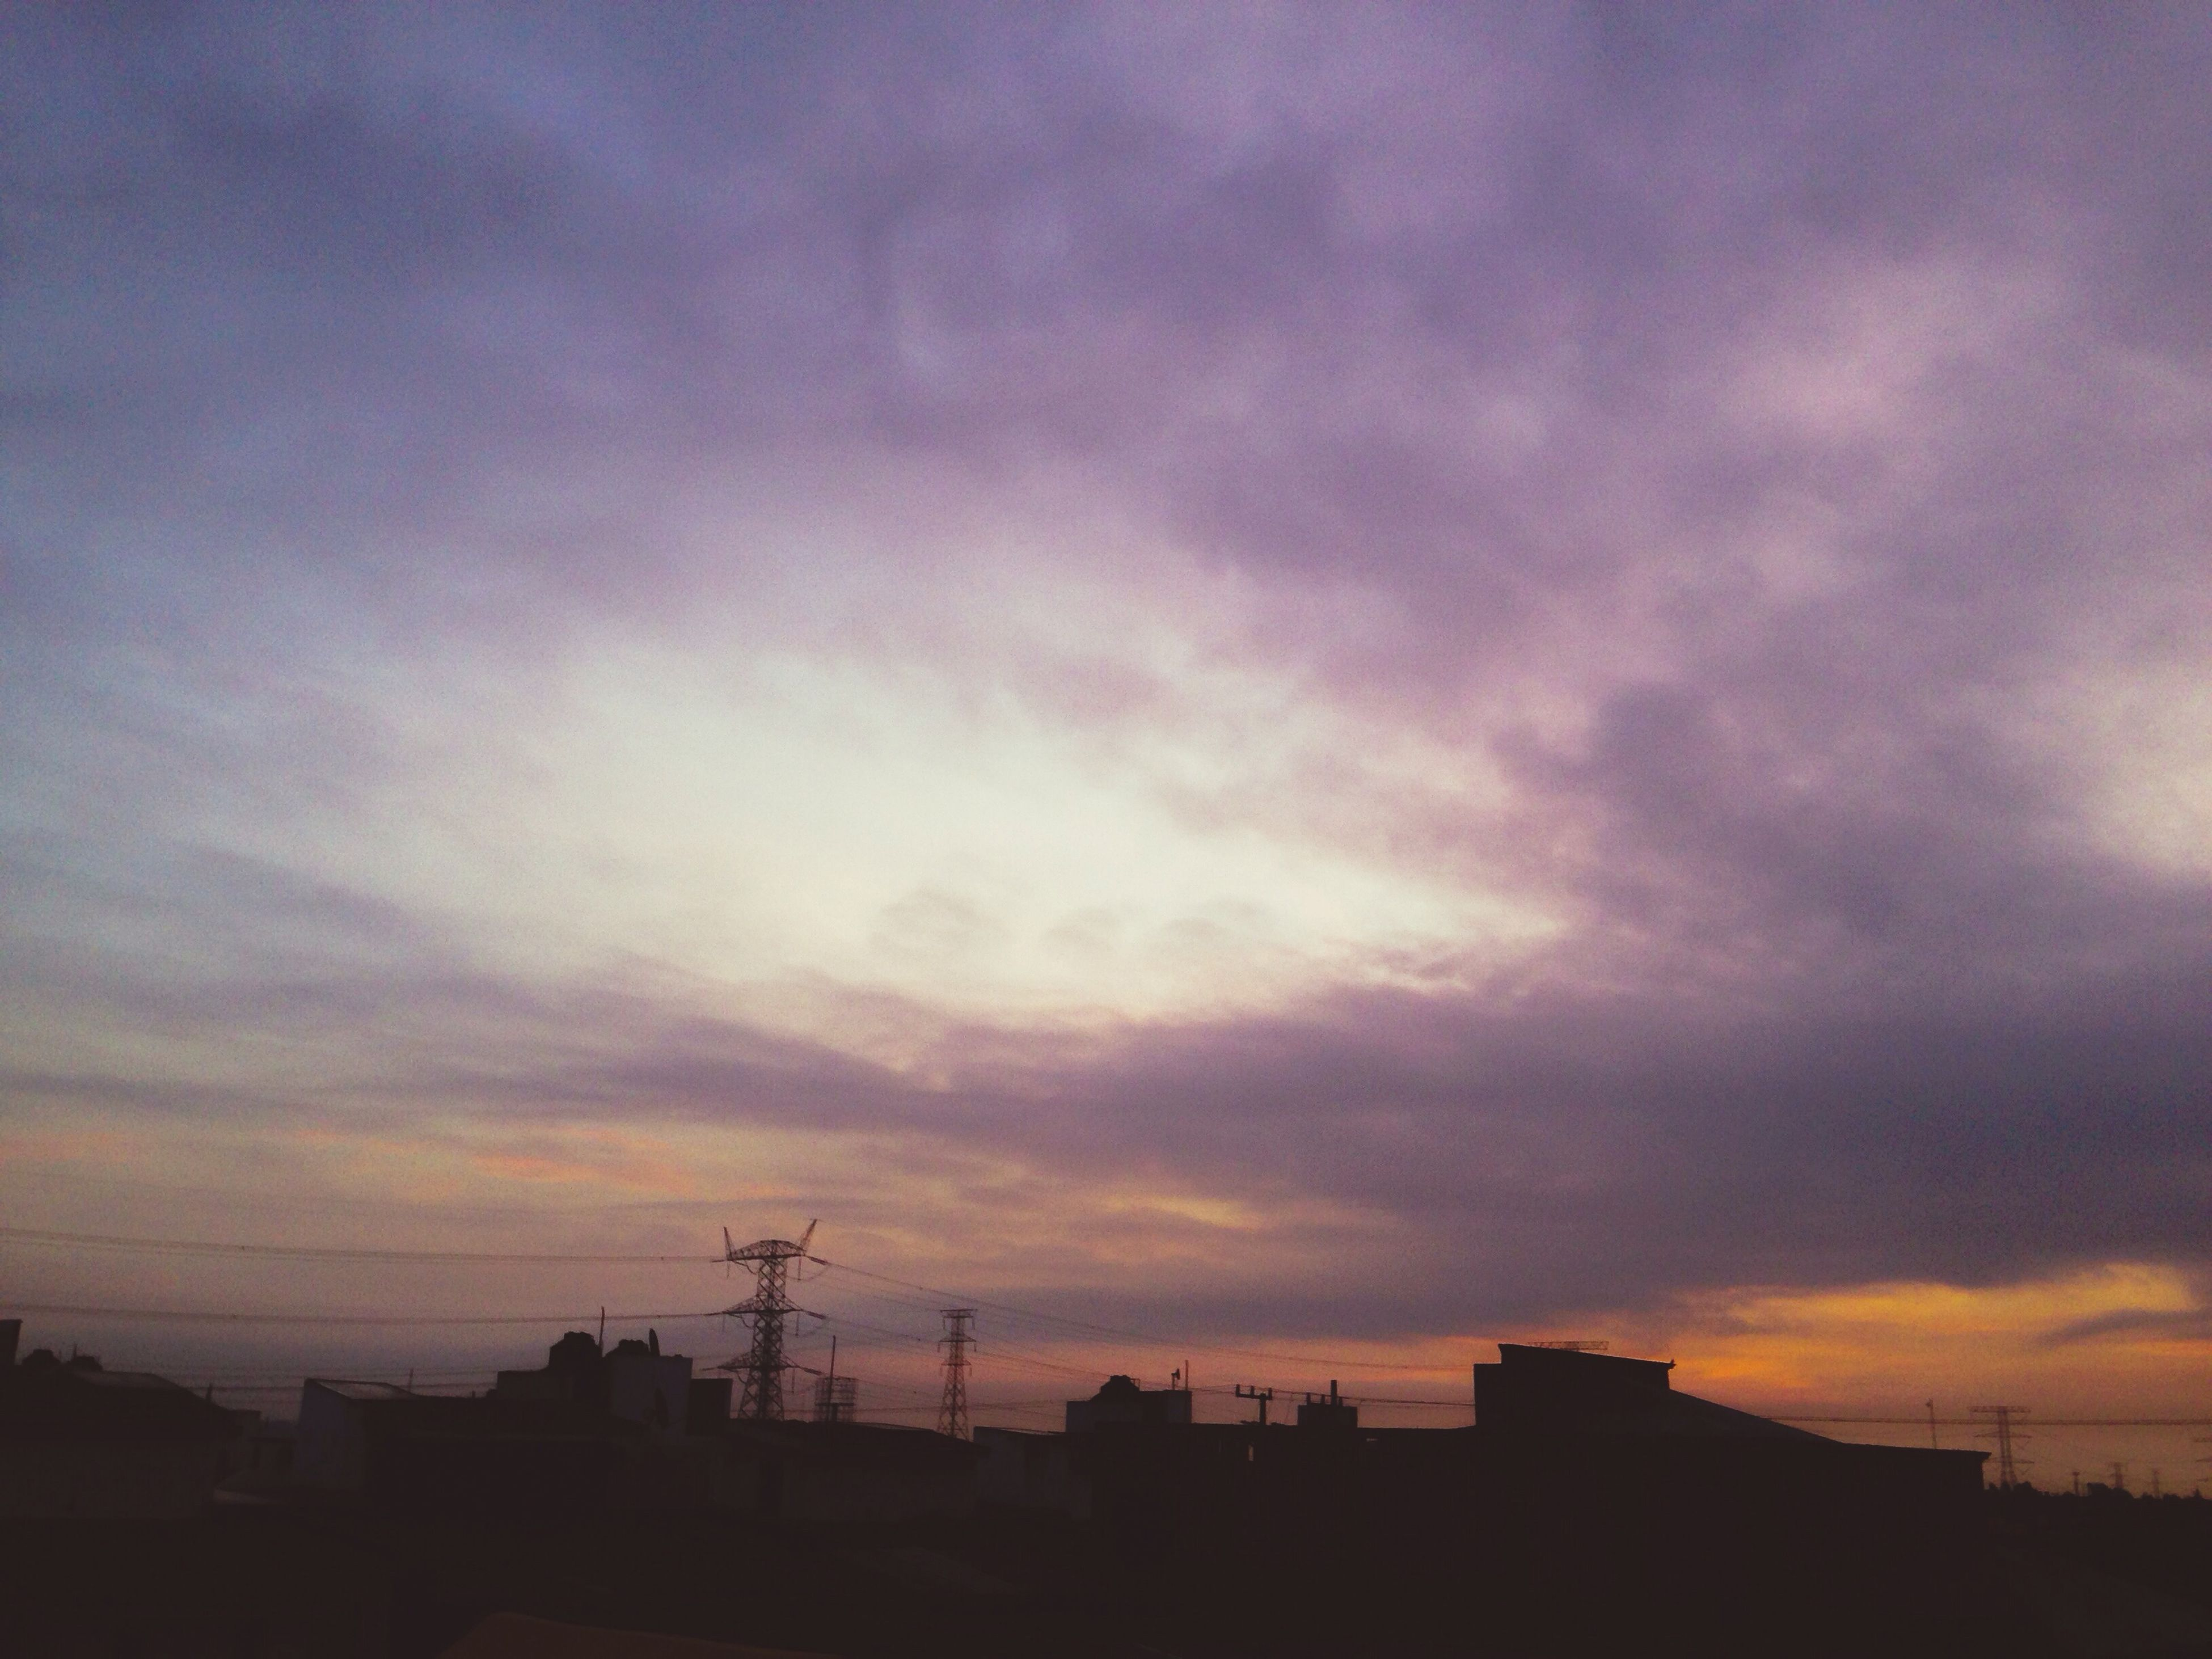 sunset, silhouette, sky, building exterior, architecture, built structure, cloud - sky, low angle view, cloudy, orange color, cloud, dramatic sky, beauty in nature, house, scenics, nature, dusk, residential structure, building, outdoors